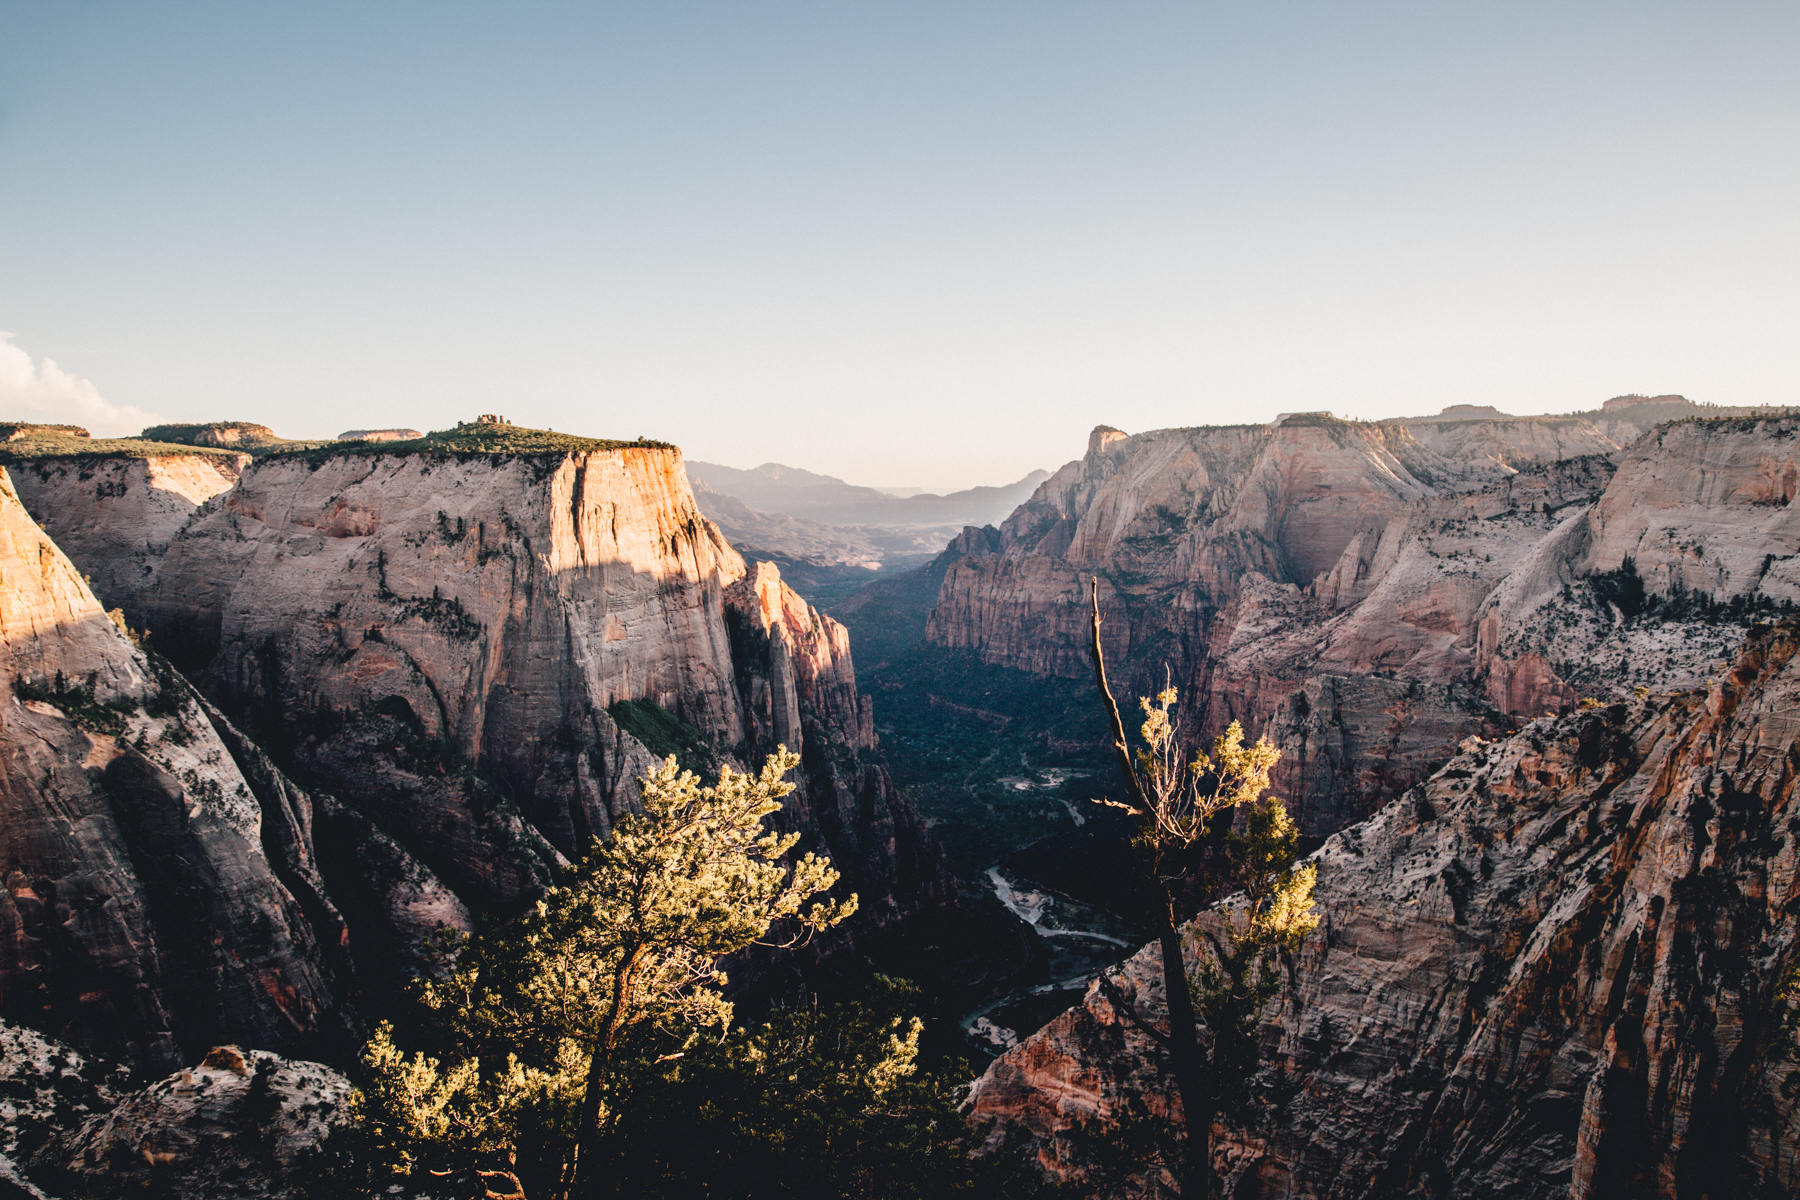 Mountains-Zion-National Park-Landscape-Utah-Photographer